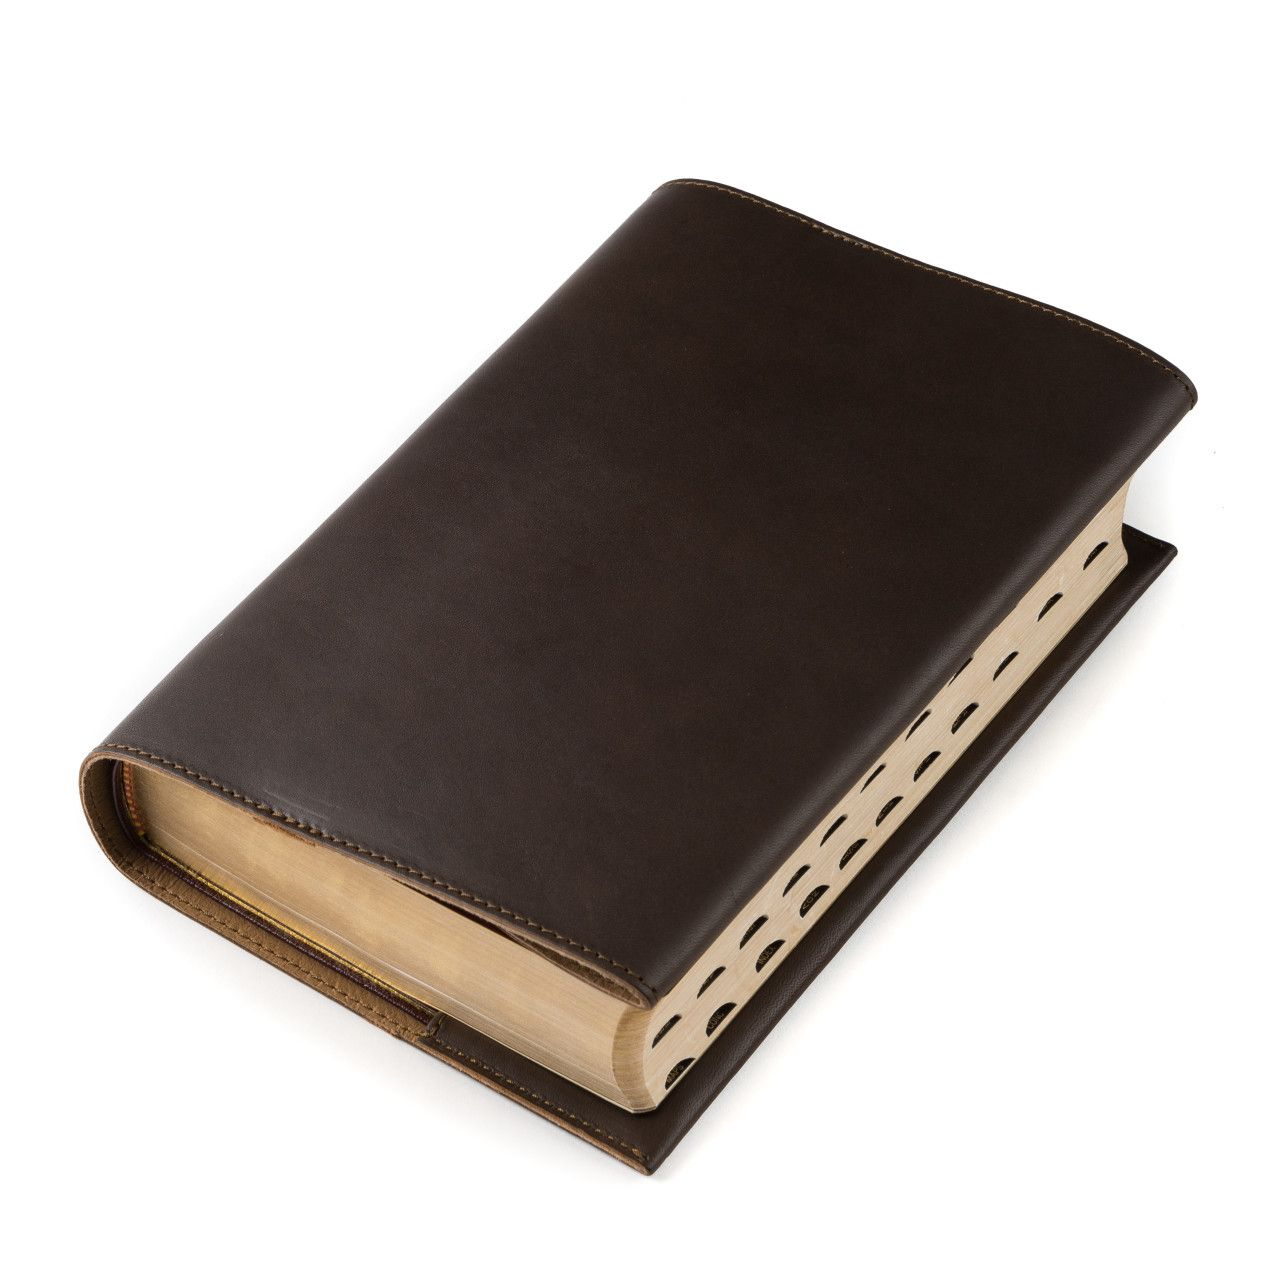 leather book cover large in dark coffee brown leather